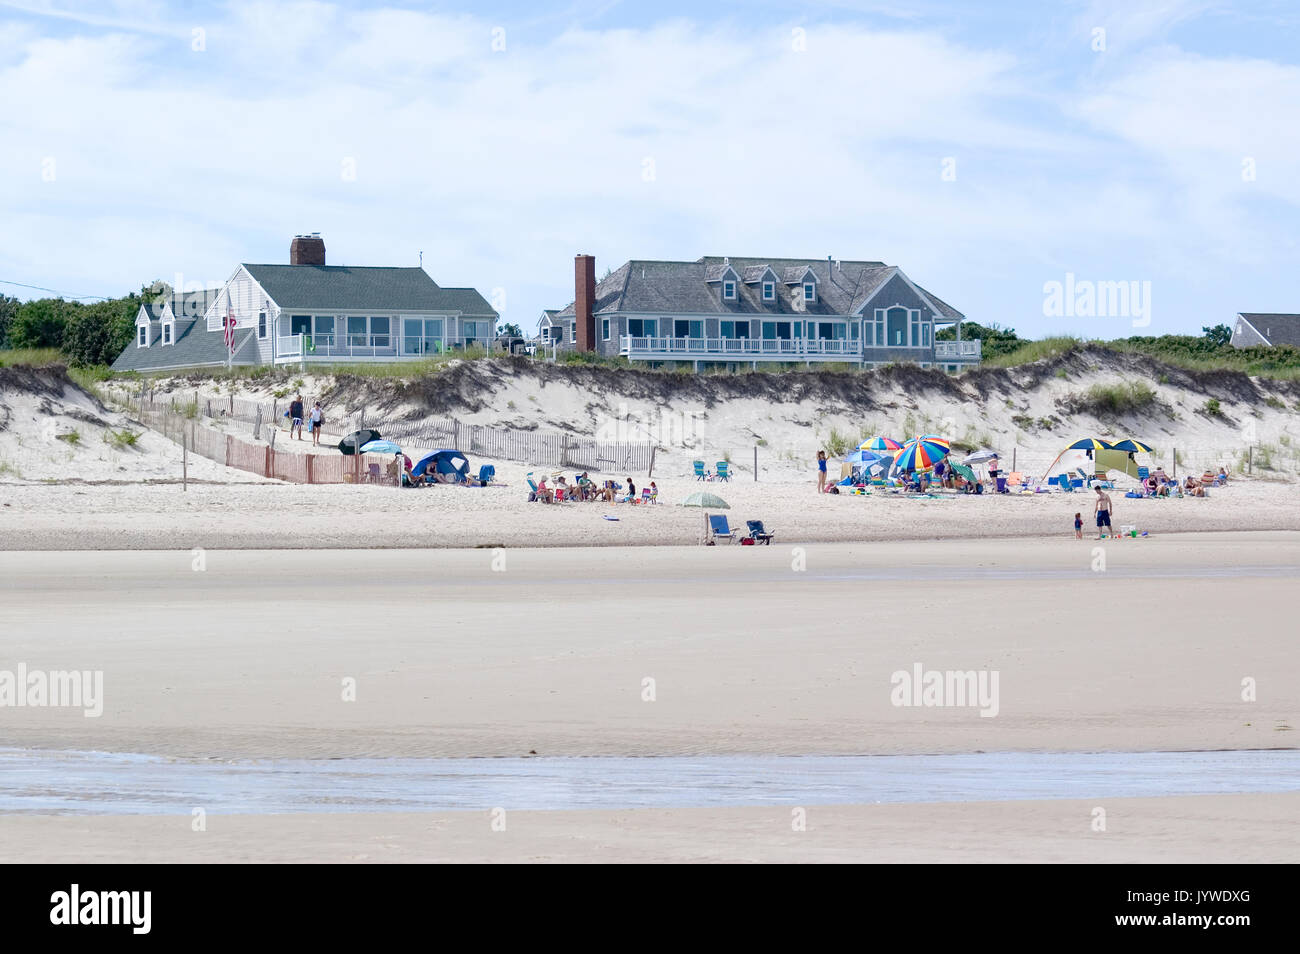 A day at the beach with upscale summer homes on Howes Beach - Dennis, MA - Cape Cod - Stock Image